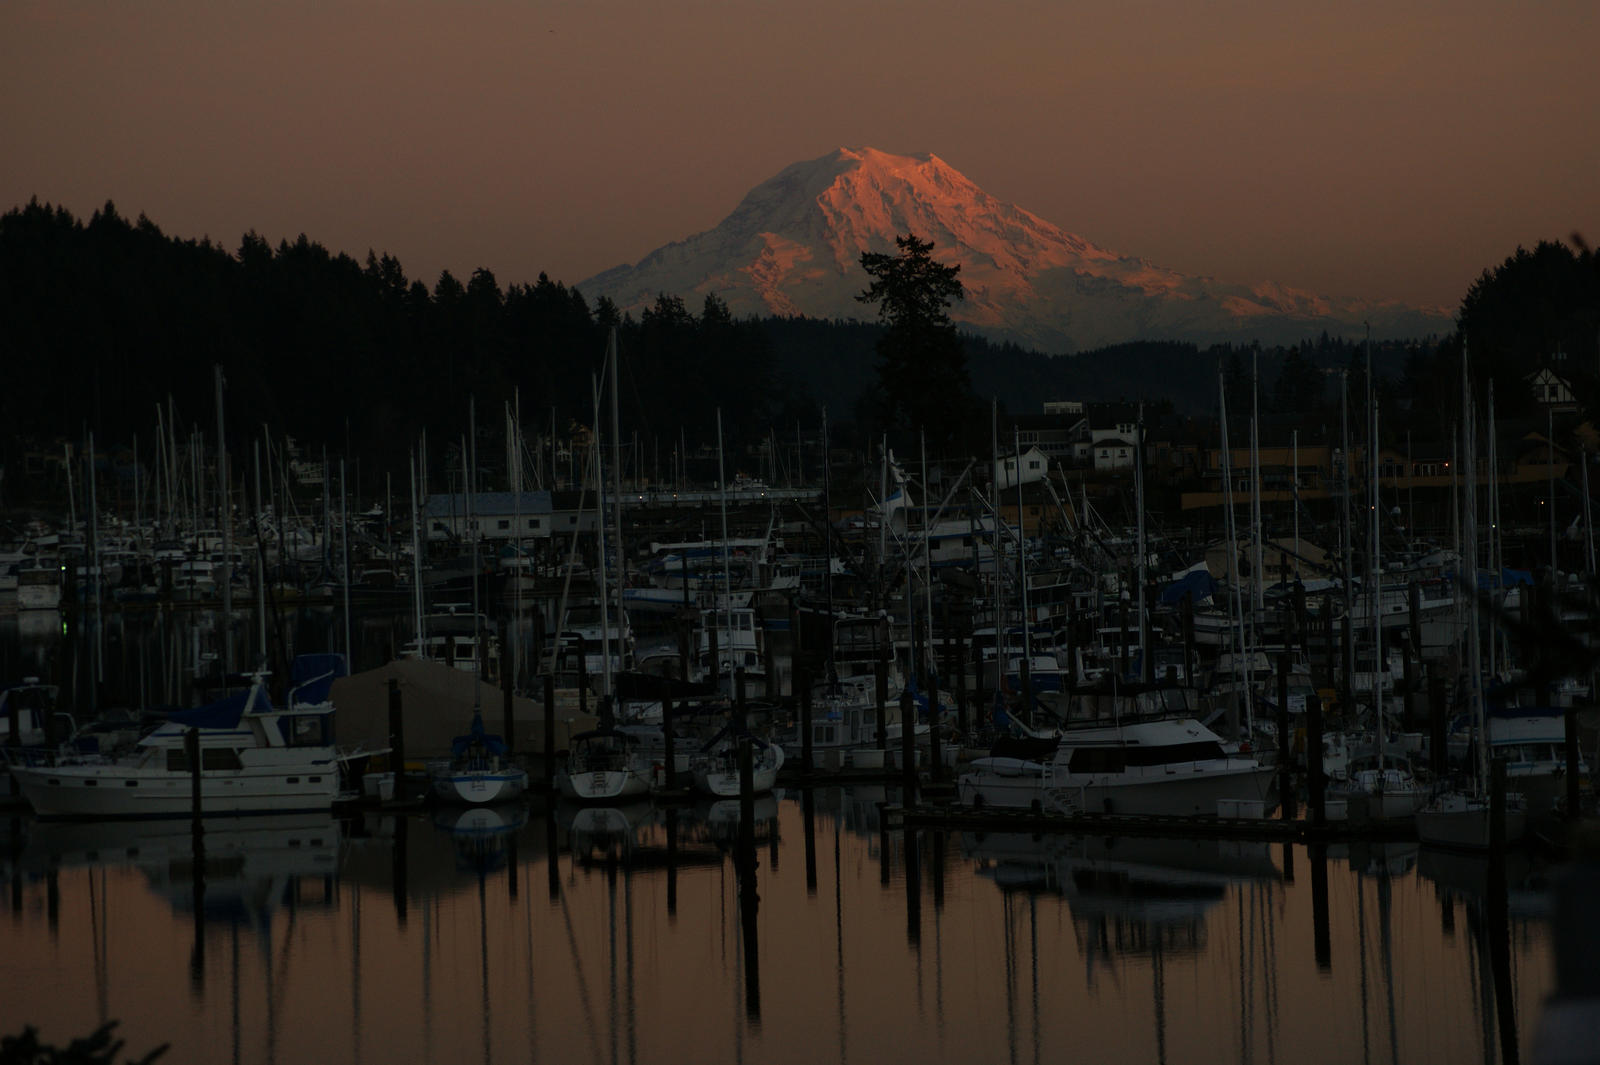 gig harbor chat 4320 harborview drive gig harbor, wa 98332 phone 2536494600 fax 2536494696 our gig harbor office is located on the north end of town driving south towards downtown from the gig harbor north shopping center burnham dr nw turns into harborview dr right where our office is located.